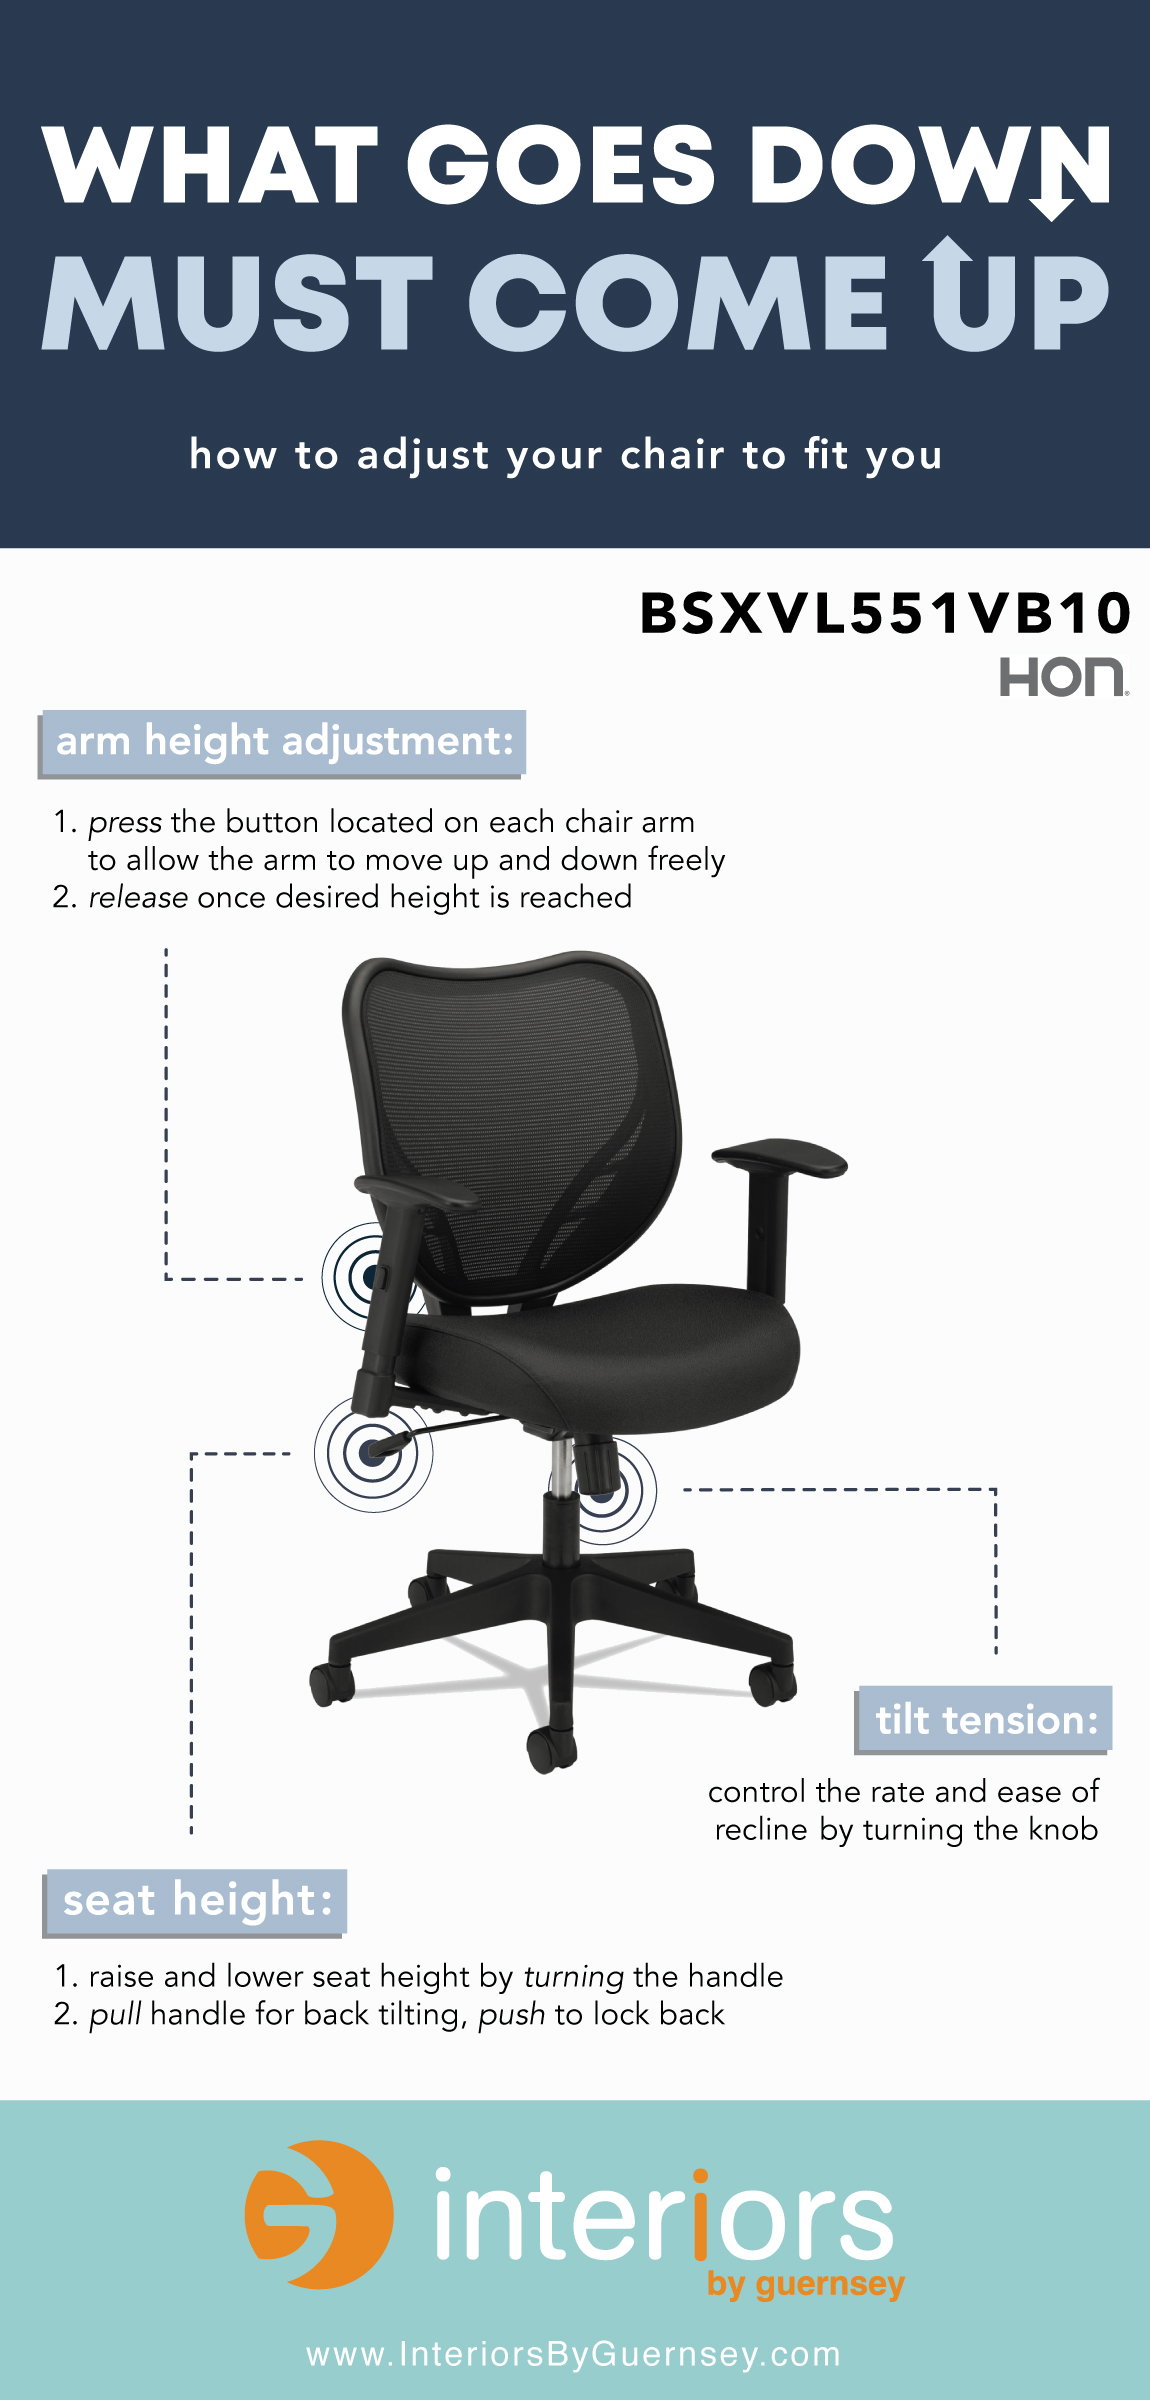 How To Adjust Office Chair How To Adjust Your Office Chair Infographic Interiors By Guernsey